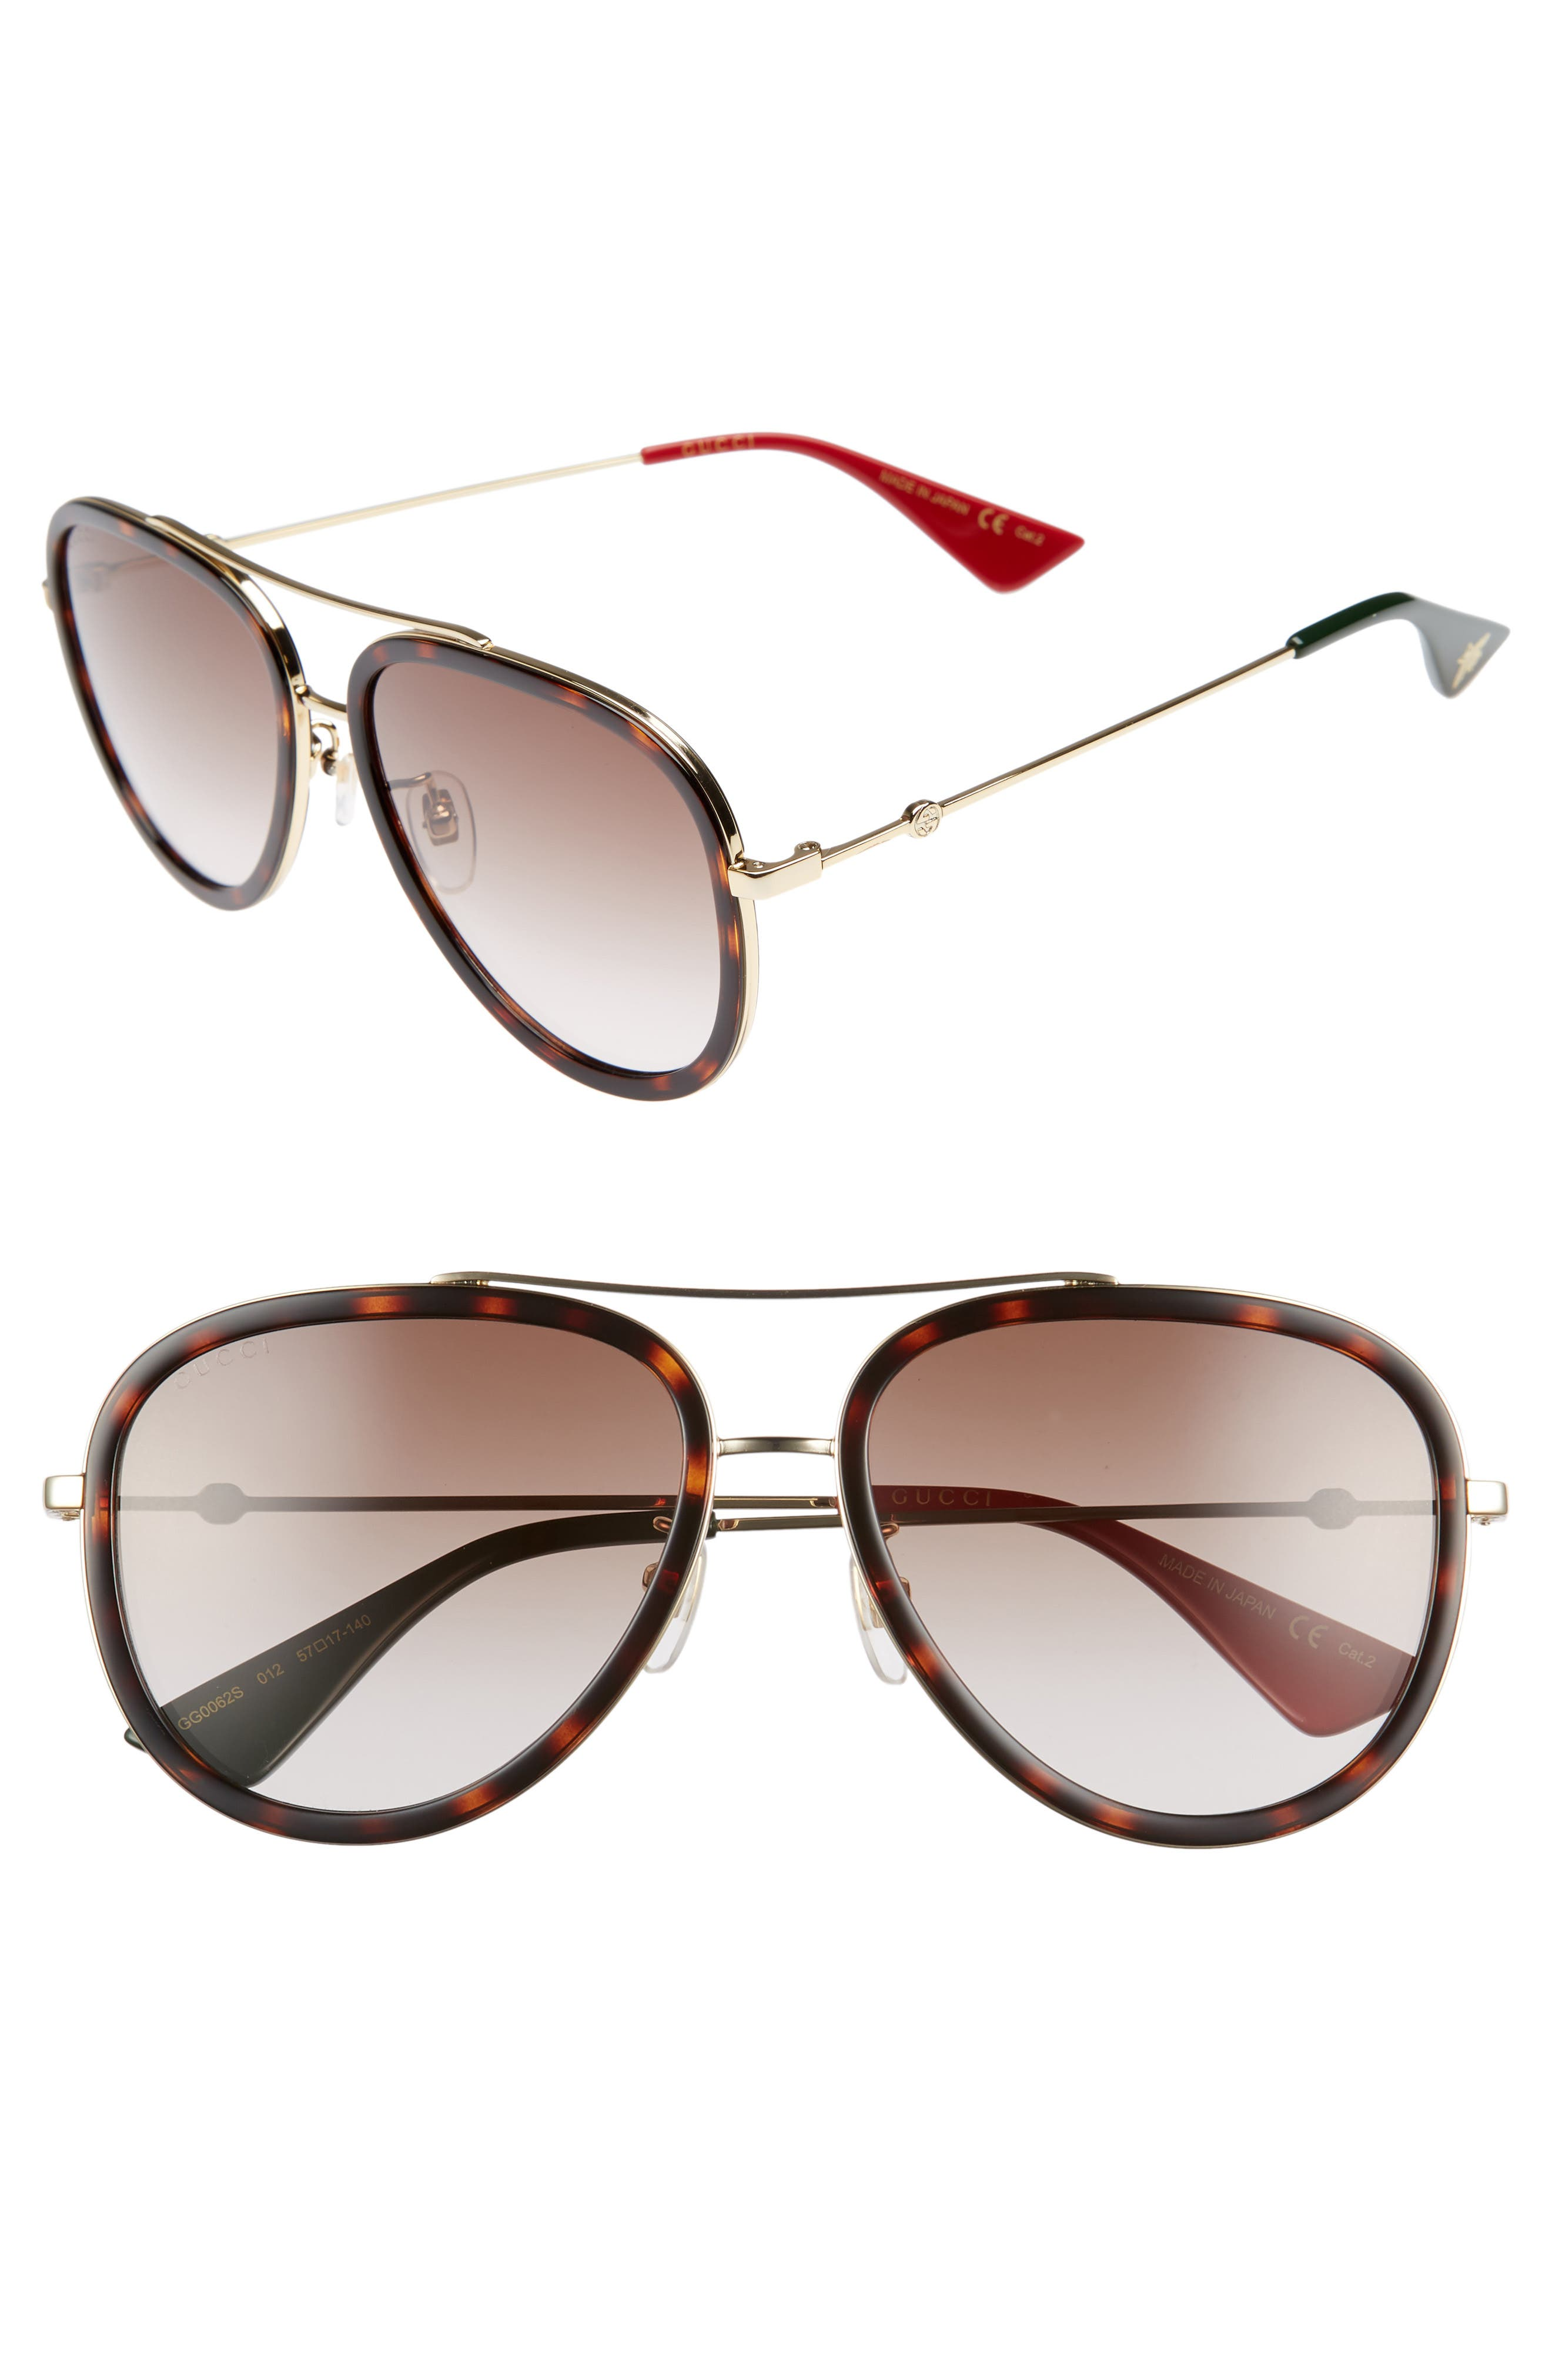 Gucci 57Mm Aviator Sunglasses - Gold/ Red/ Green